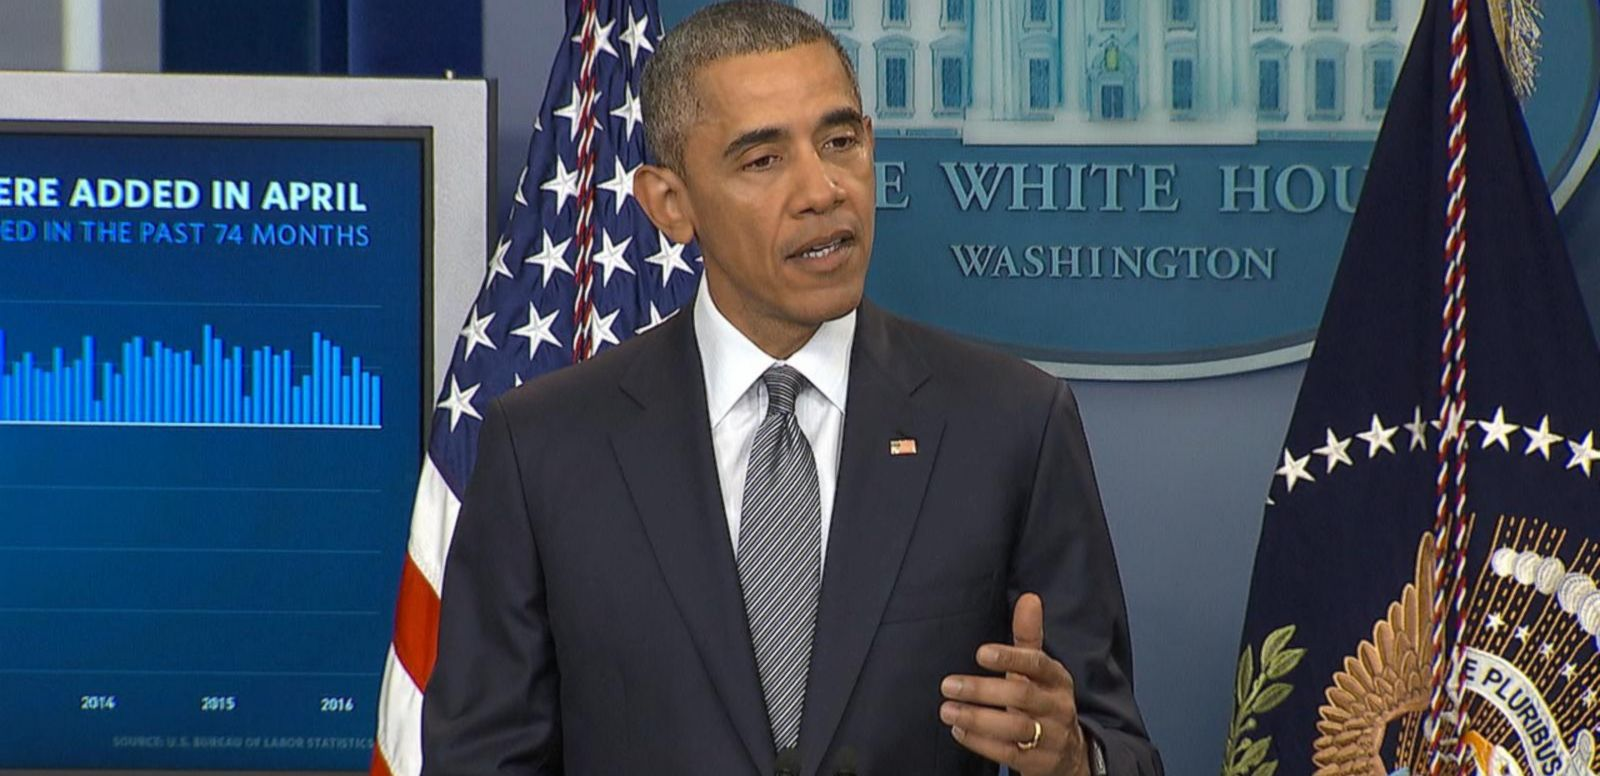 The president is urging Congress to invest in infrastructure and reform the tax code.